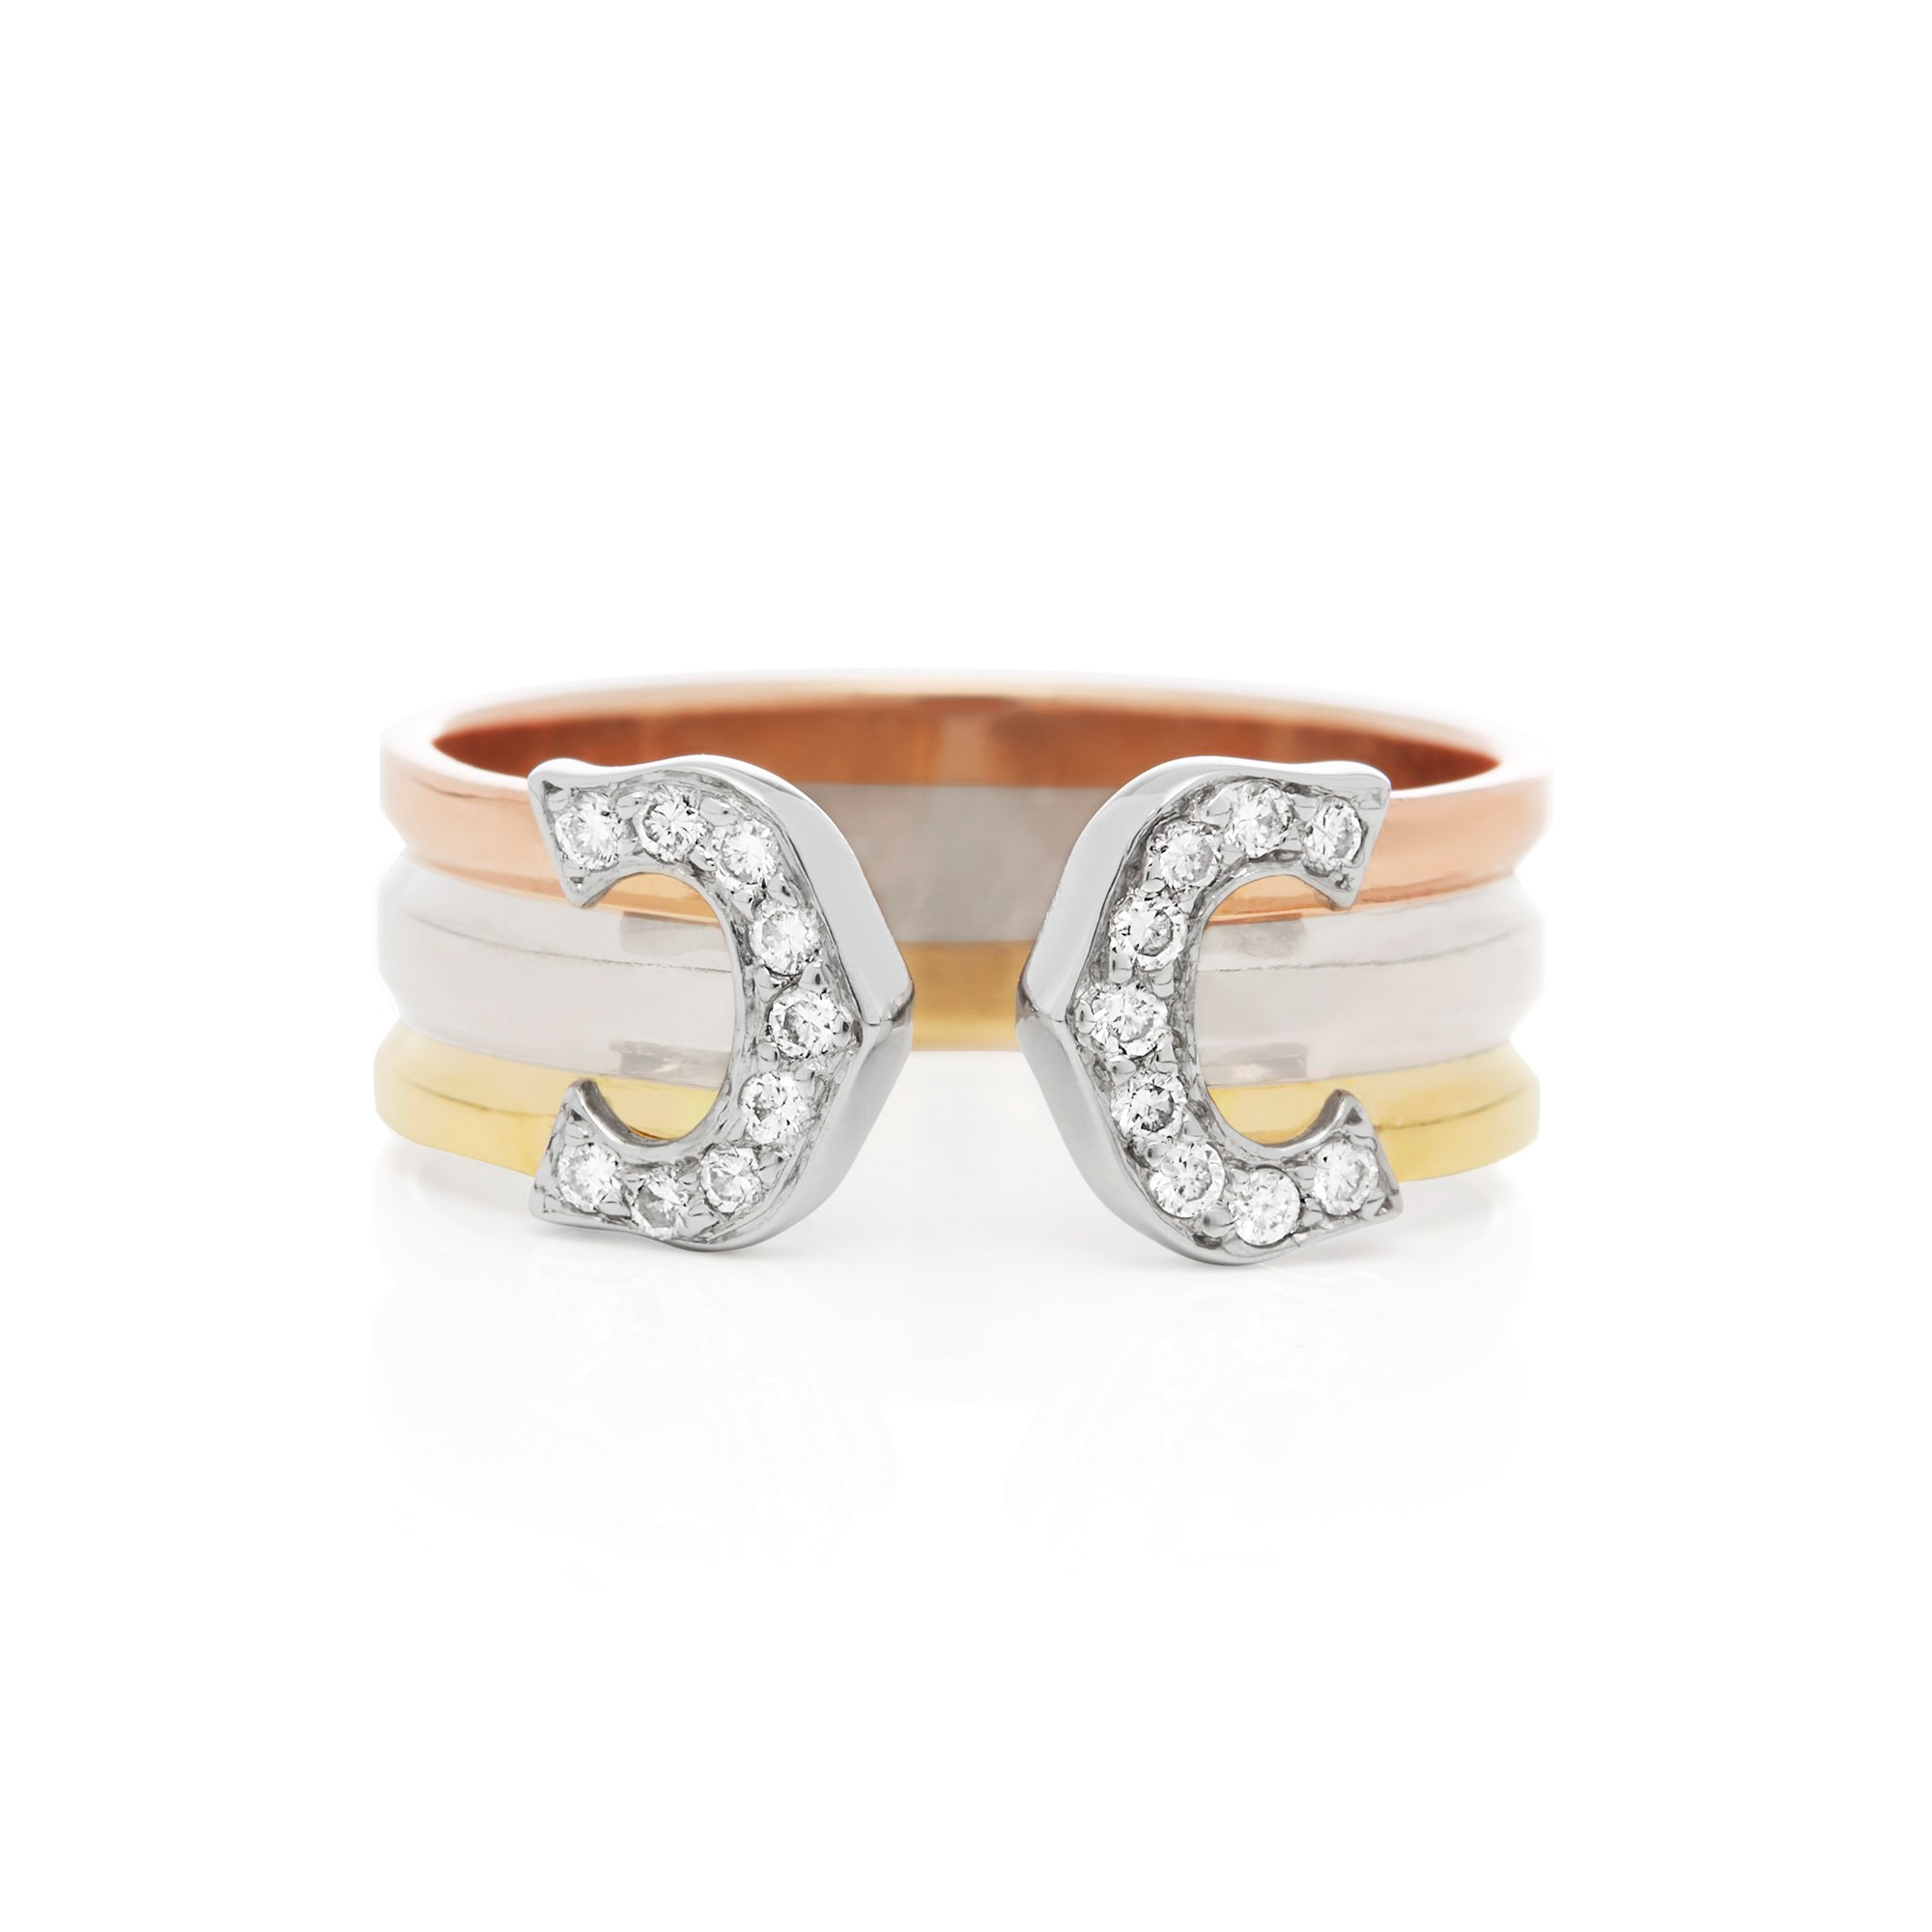 Cartier 18k Yellow, White & Rose Gold C De Cartier Diamond Ring